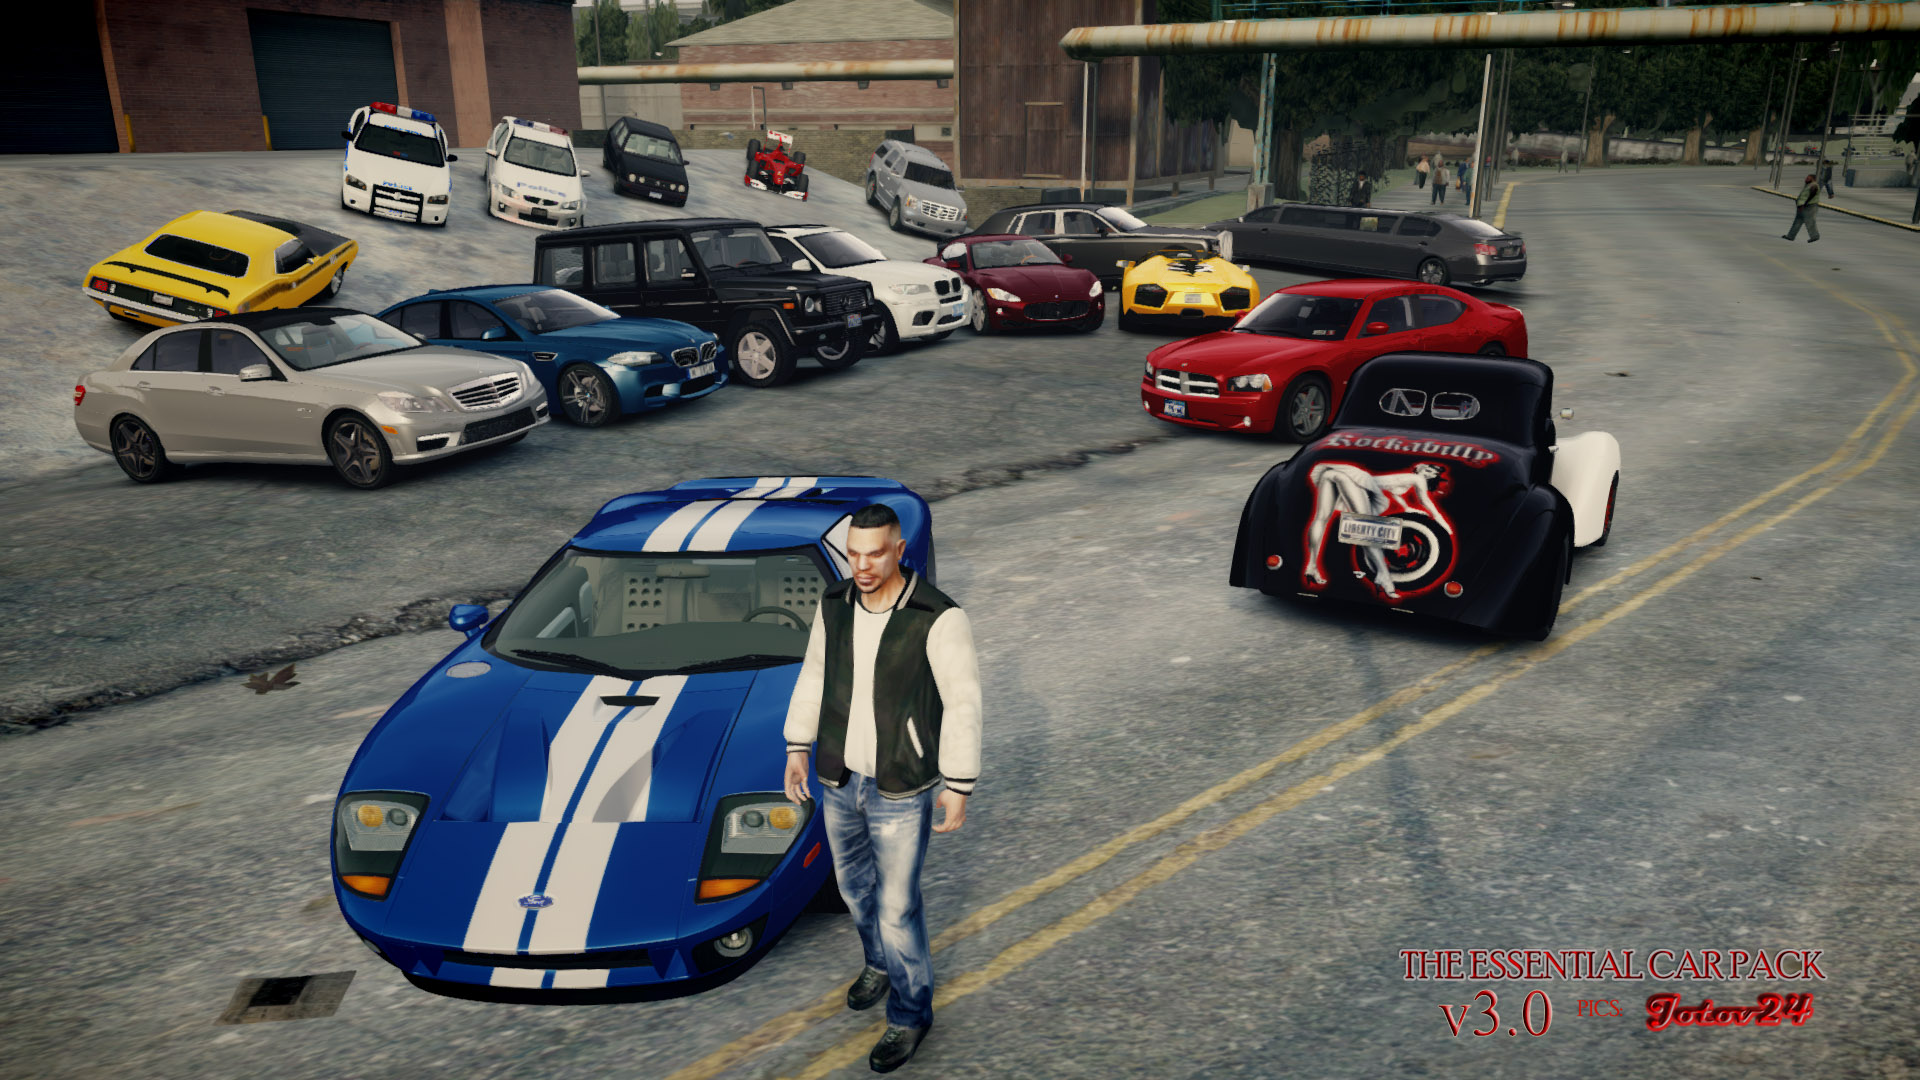 36 Hours in S o Paulo - The New York Times Gta 4 car list with pictures